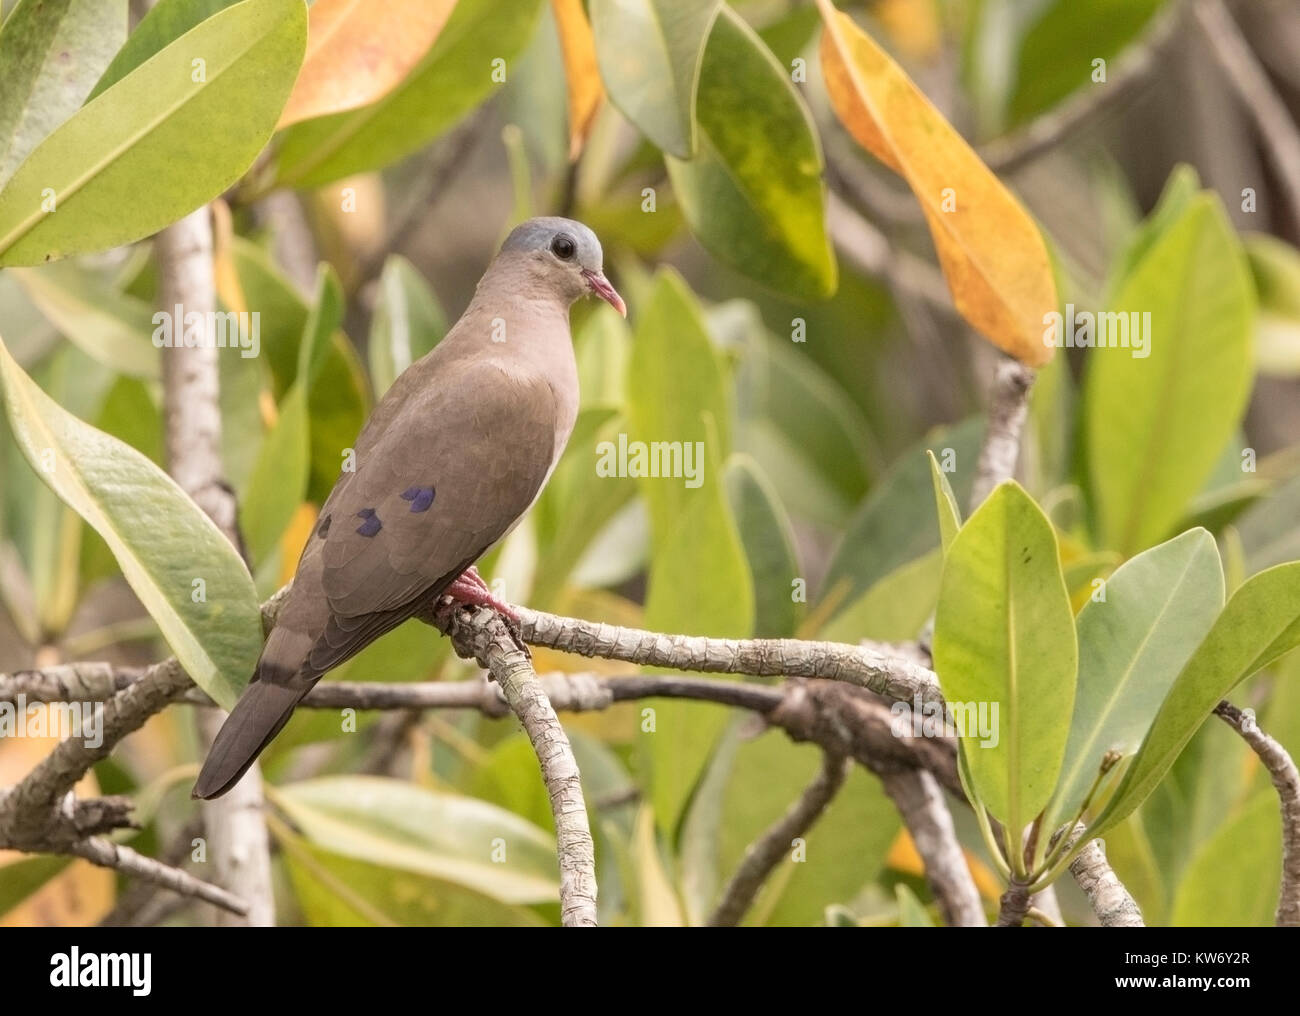 blue-spotted wood-dove Turtur afer adult perched on tree branch in forest, Gambia Stock Photo